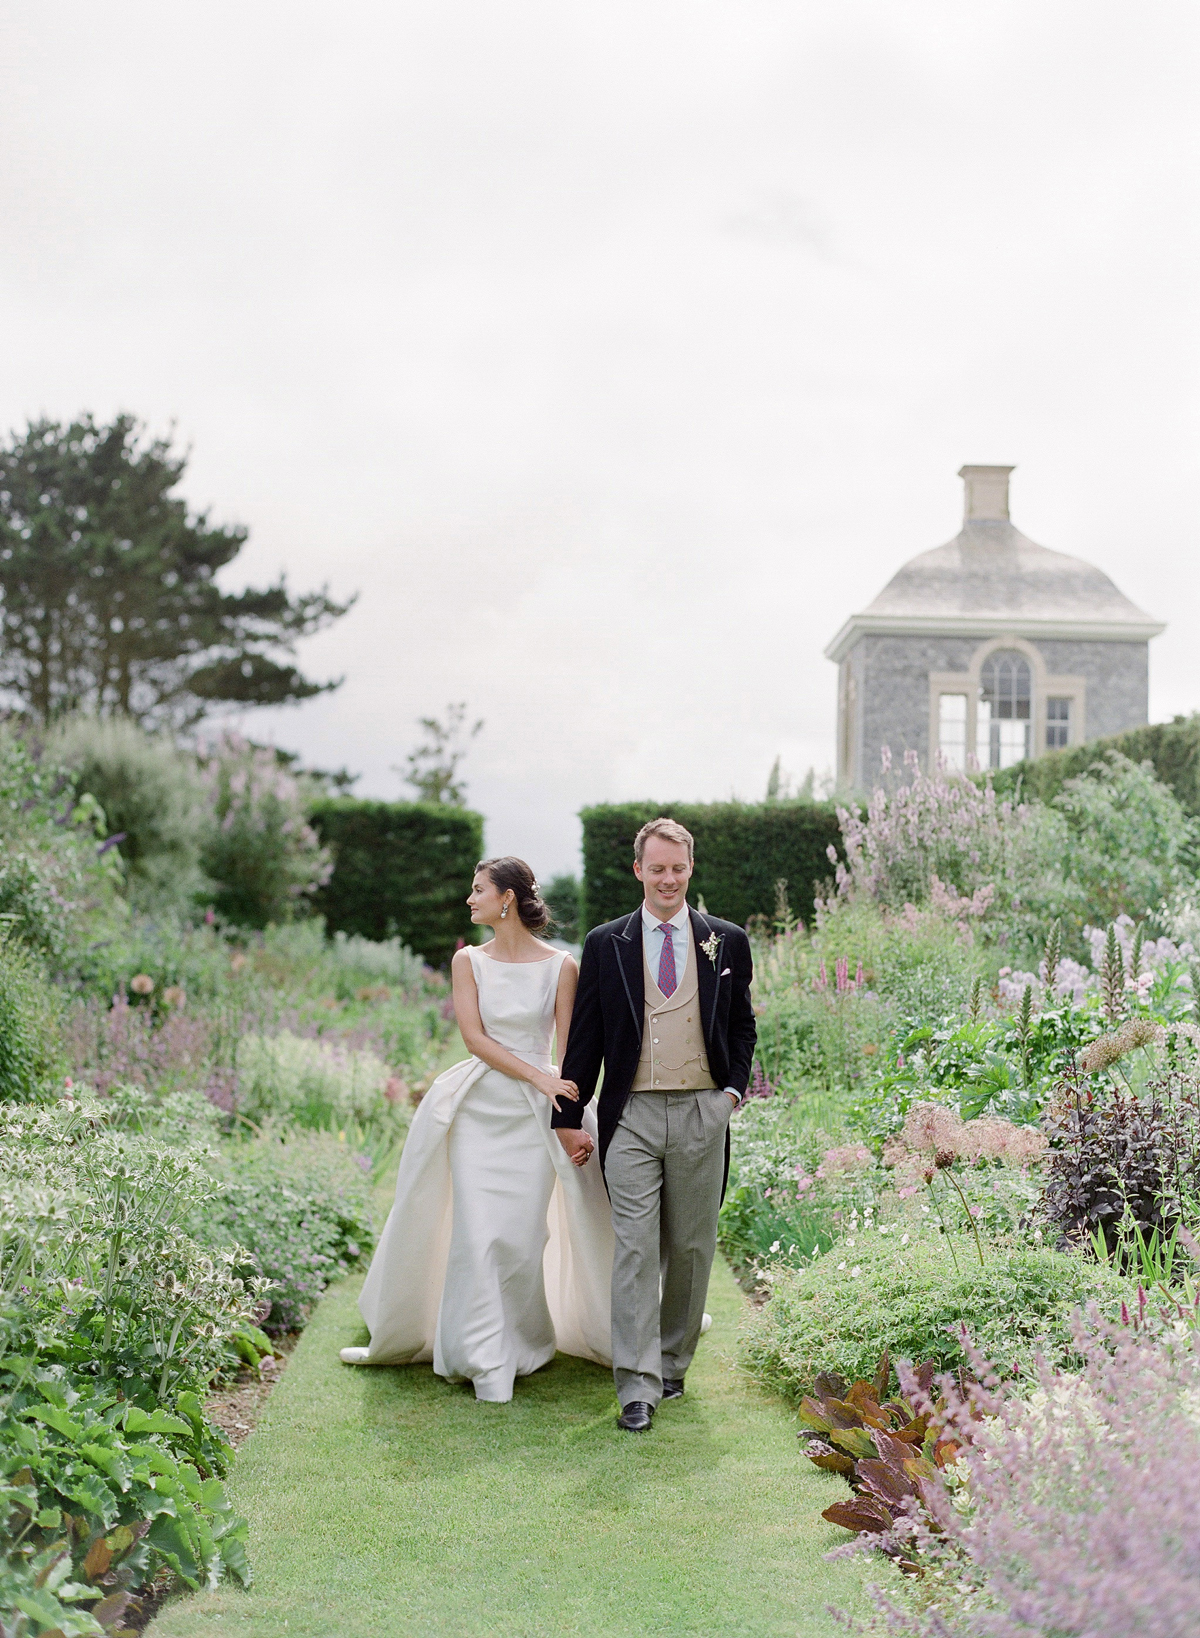 A Classic English Garden Wedding with a Green-and-White Color Palette